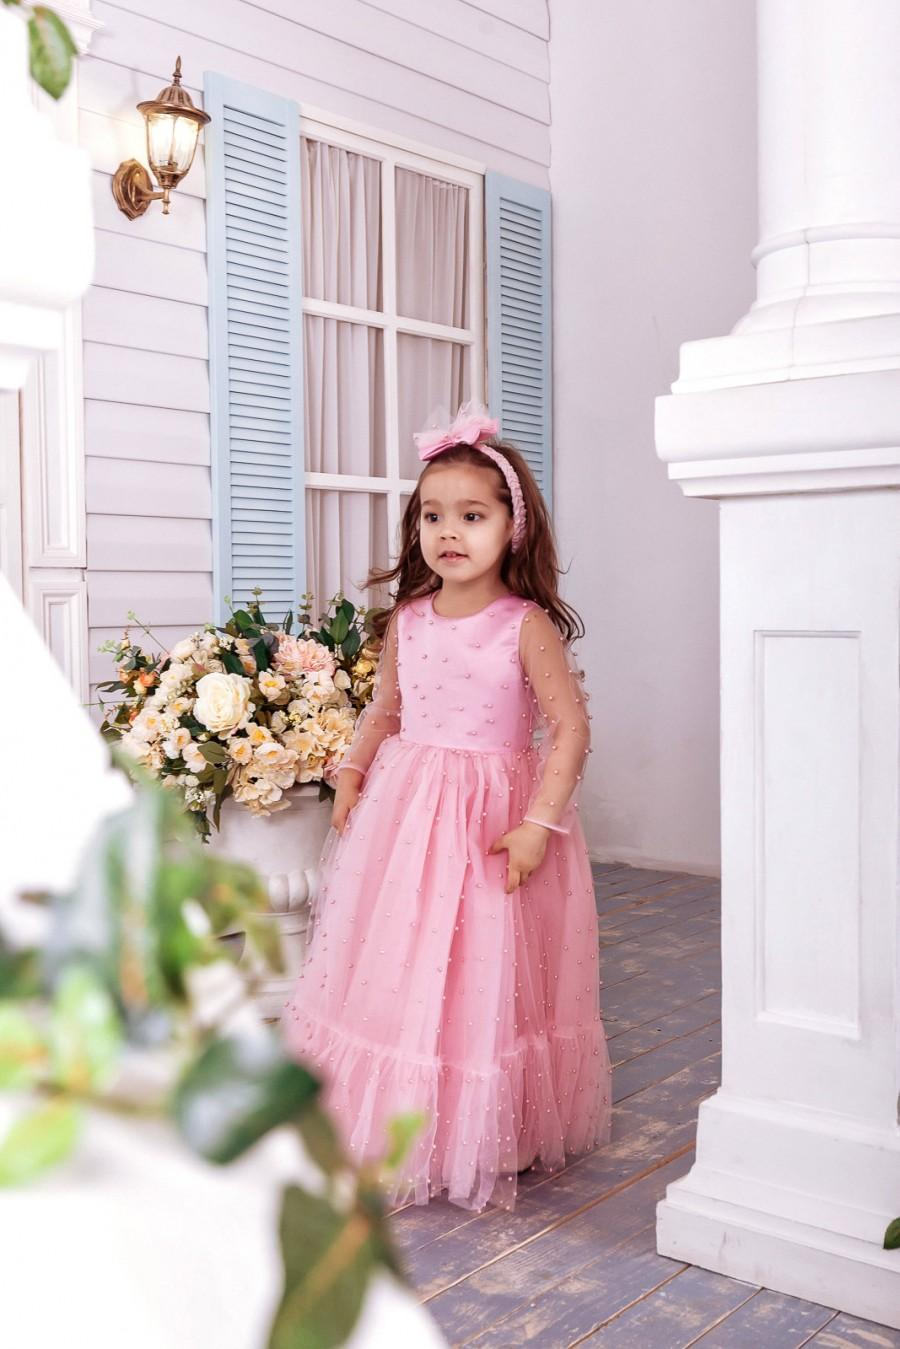 Blush Pink Flower Girl Dress Flower Girl Dress Flower Girl Dresses